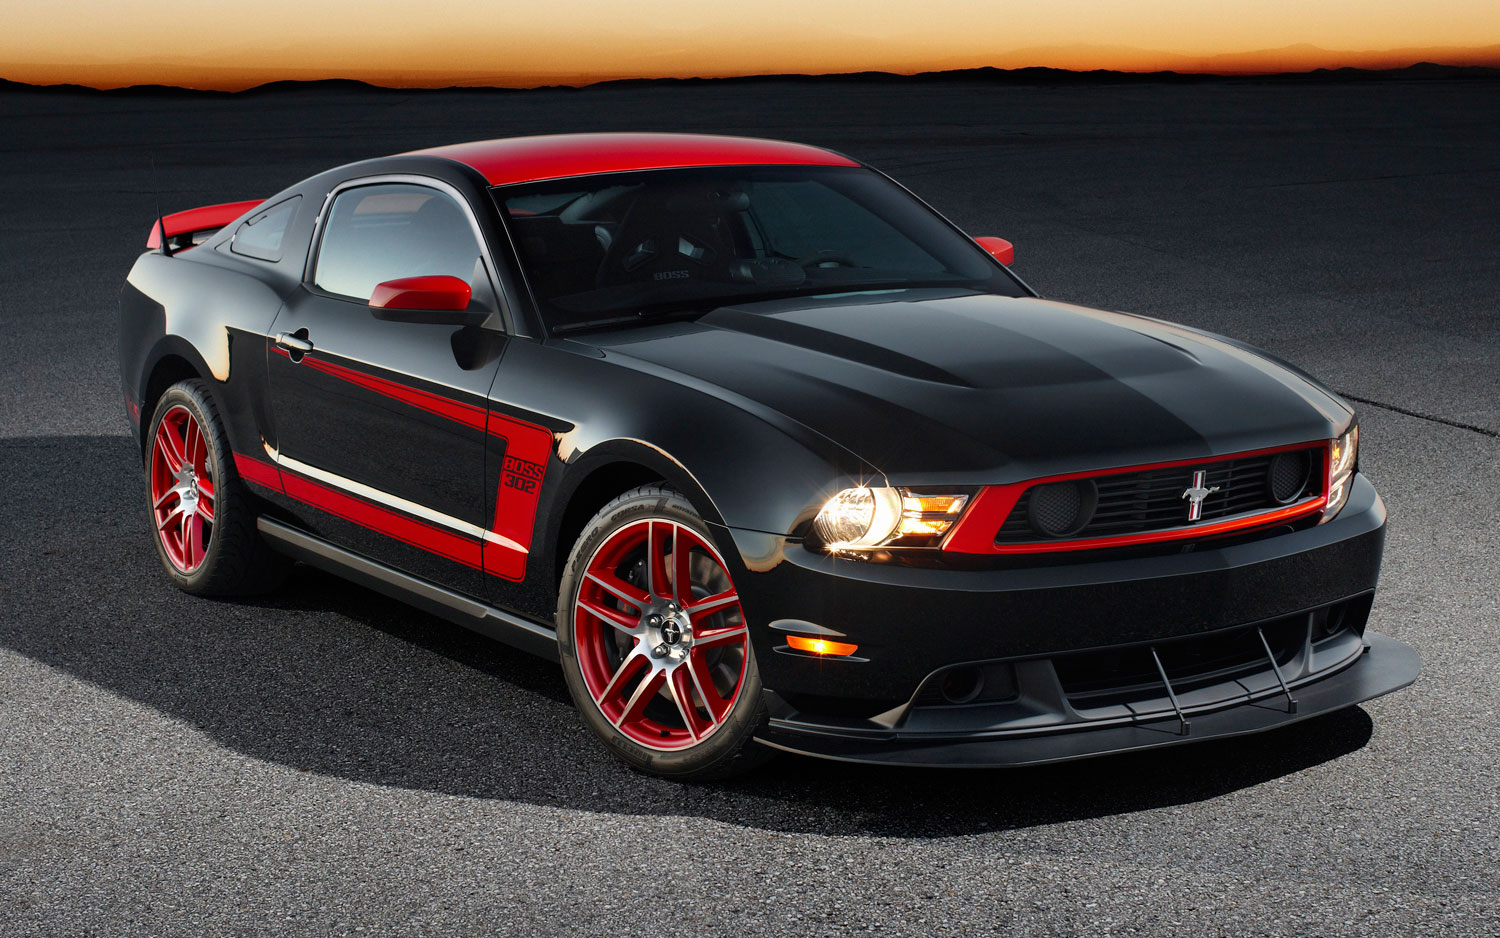 Ford Mustang Boss 302S photo 105236